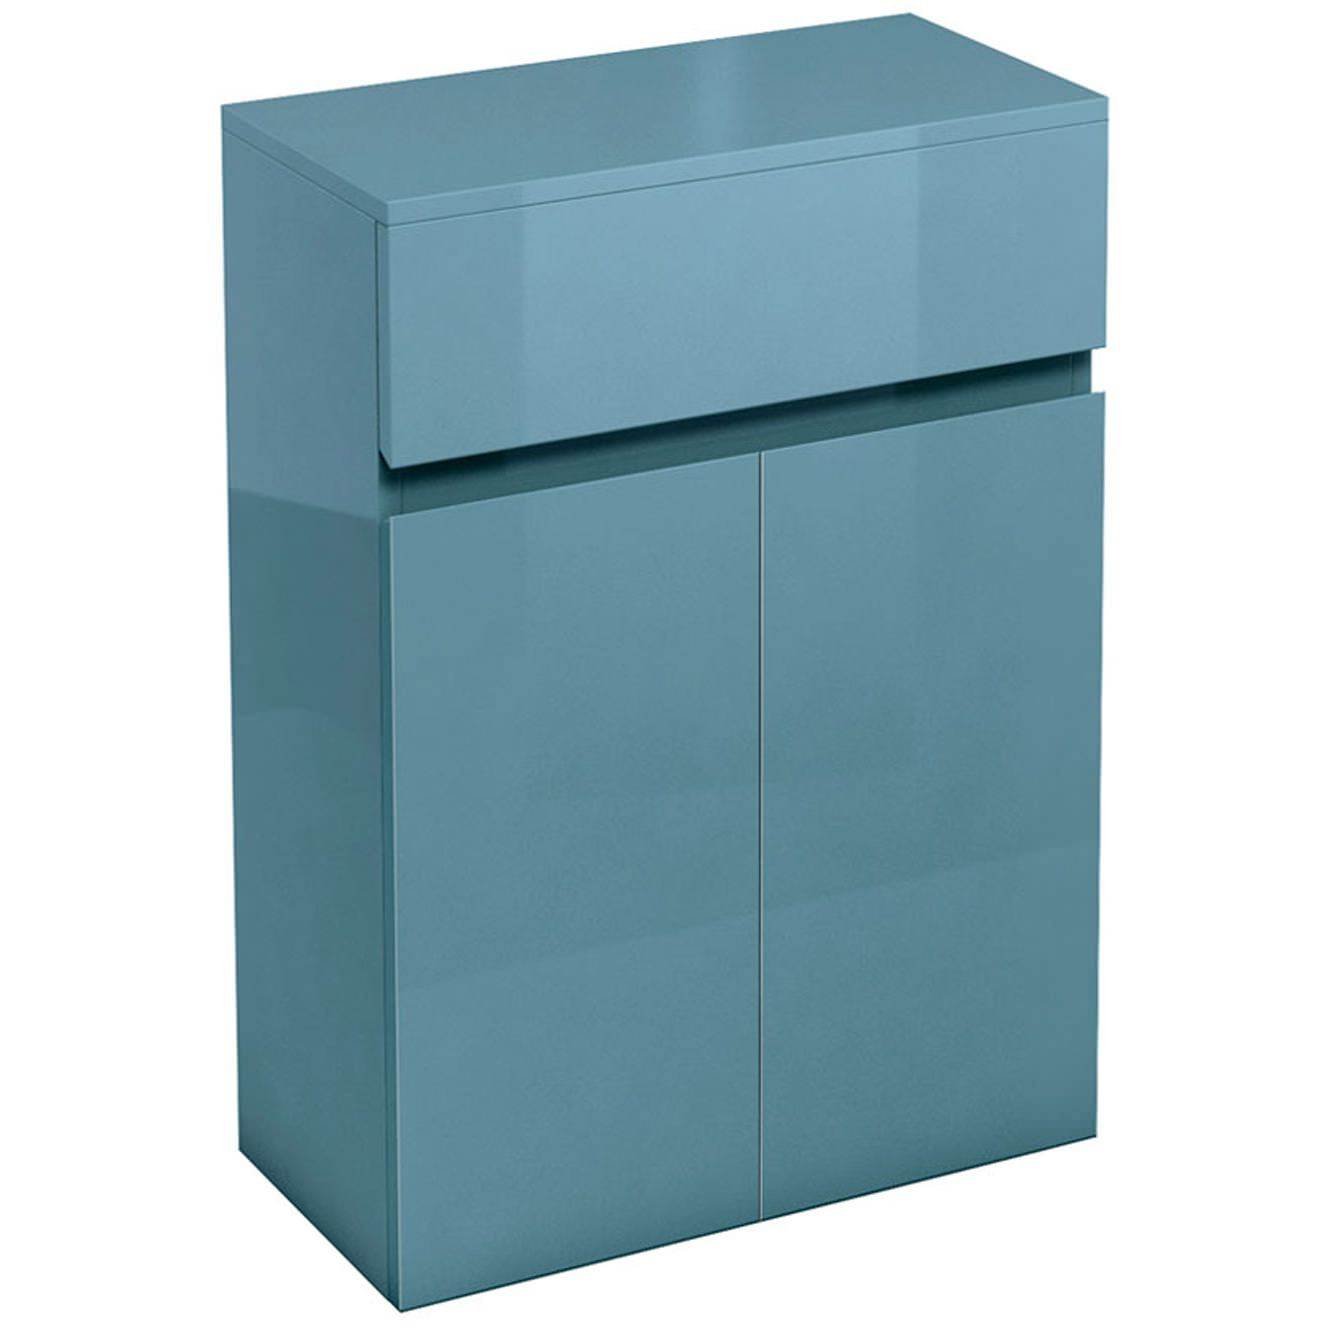 Britton aqua cabinets d30 ocean 600mm drawer and double for Kitchen cabinets 600mm